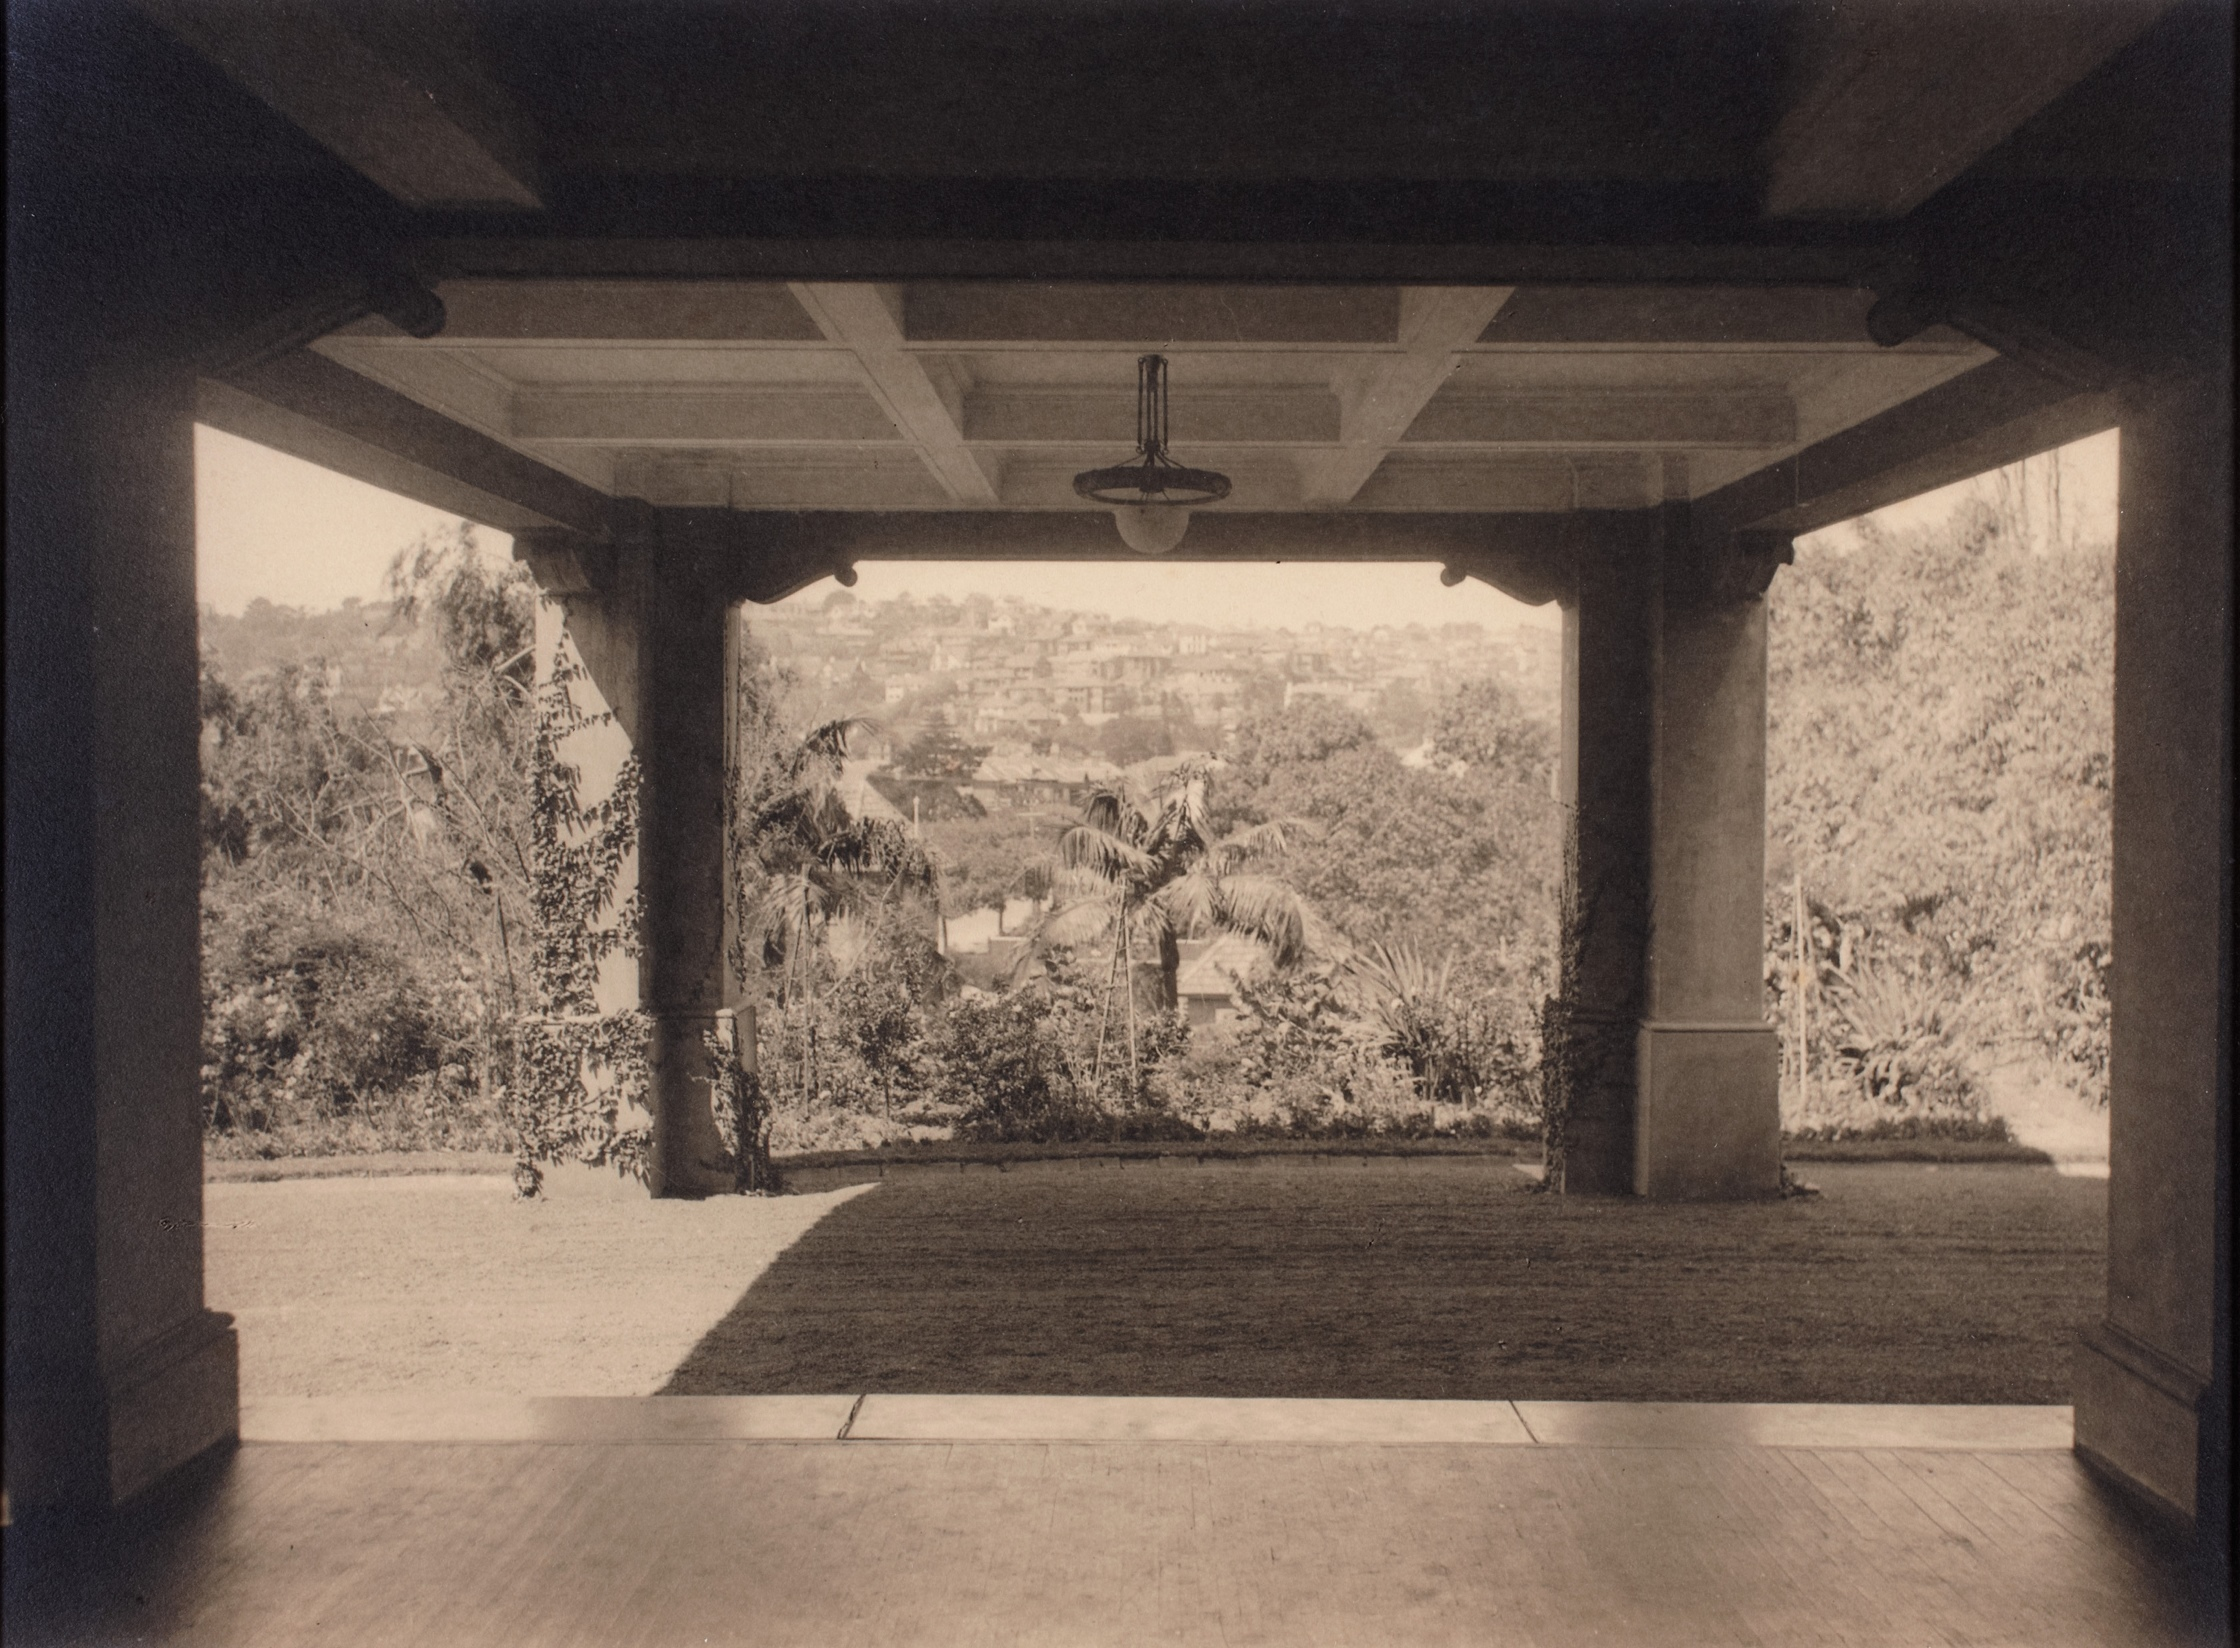 The porte-cochere at Brooksby, Ocean Avenue, Double Bay, Sydney, New South Wales, 1922 / Harold Cazneaux